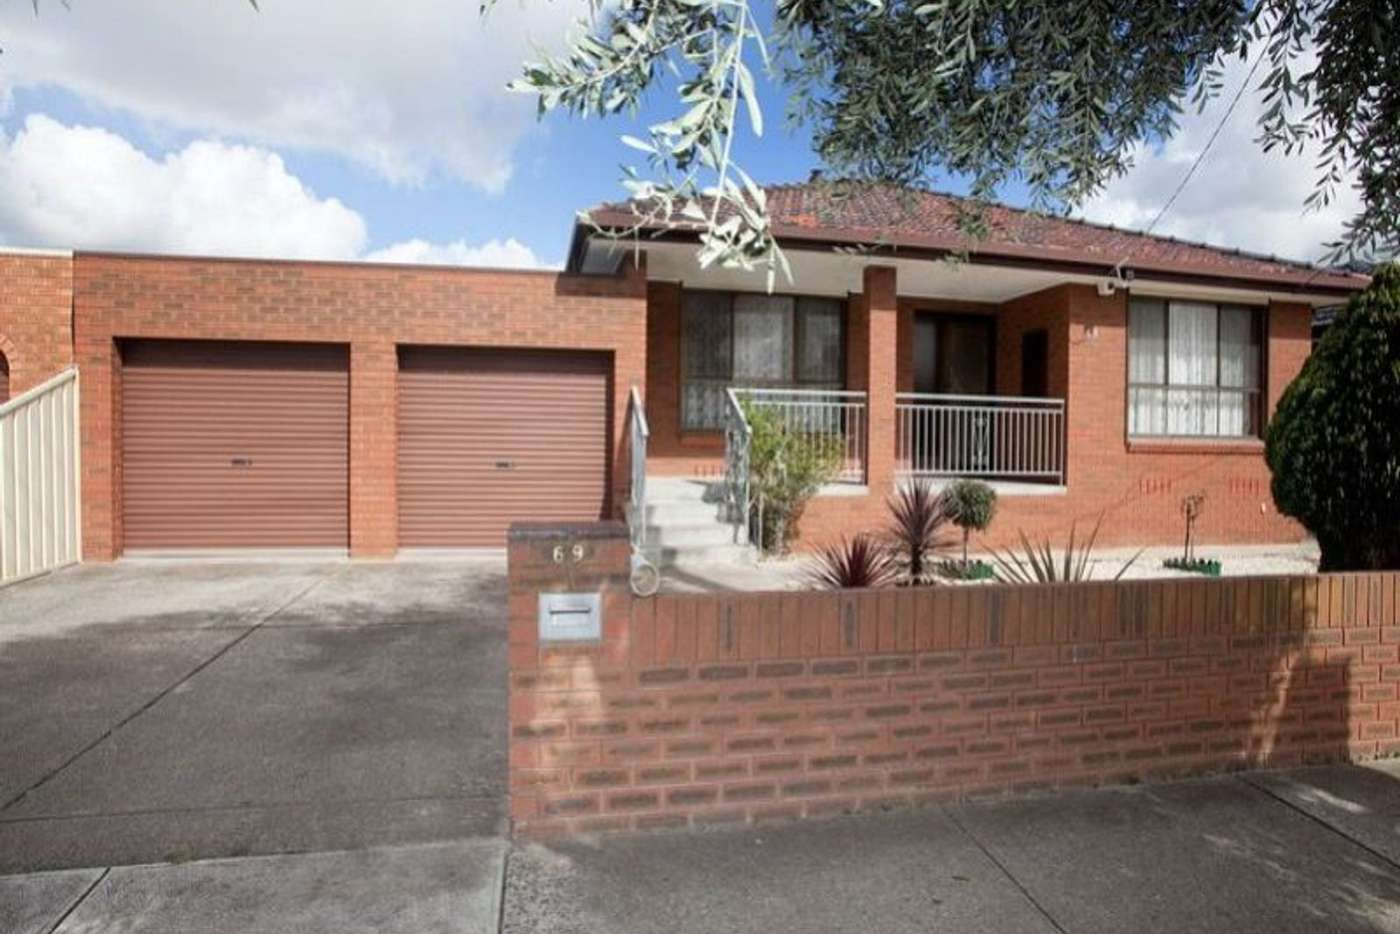 Main view of Homely house listing, 69 Barry Road, Thomastown VIC 3074